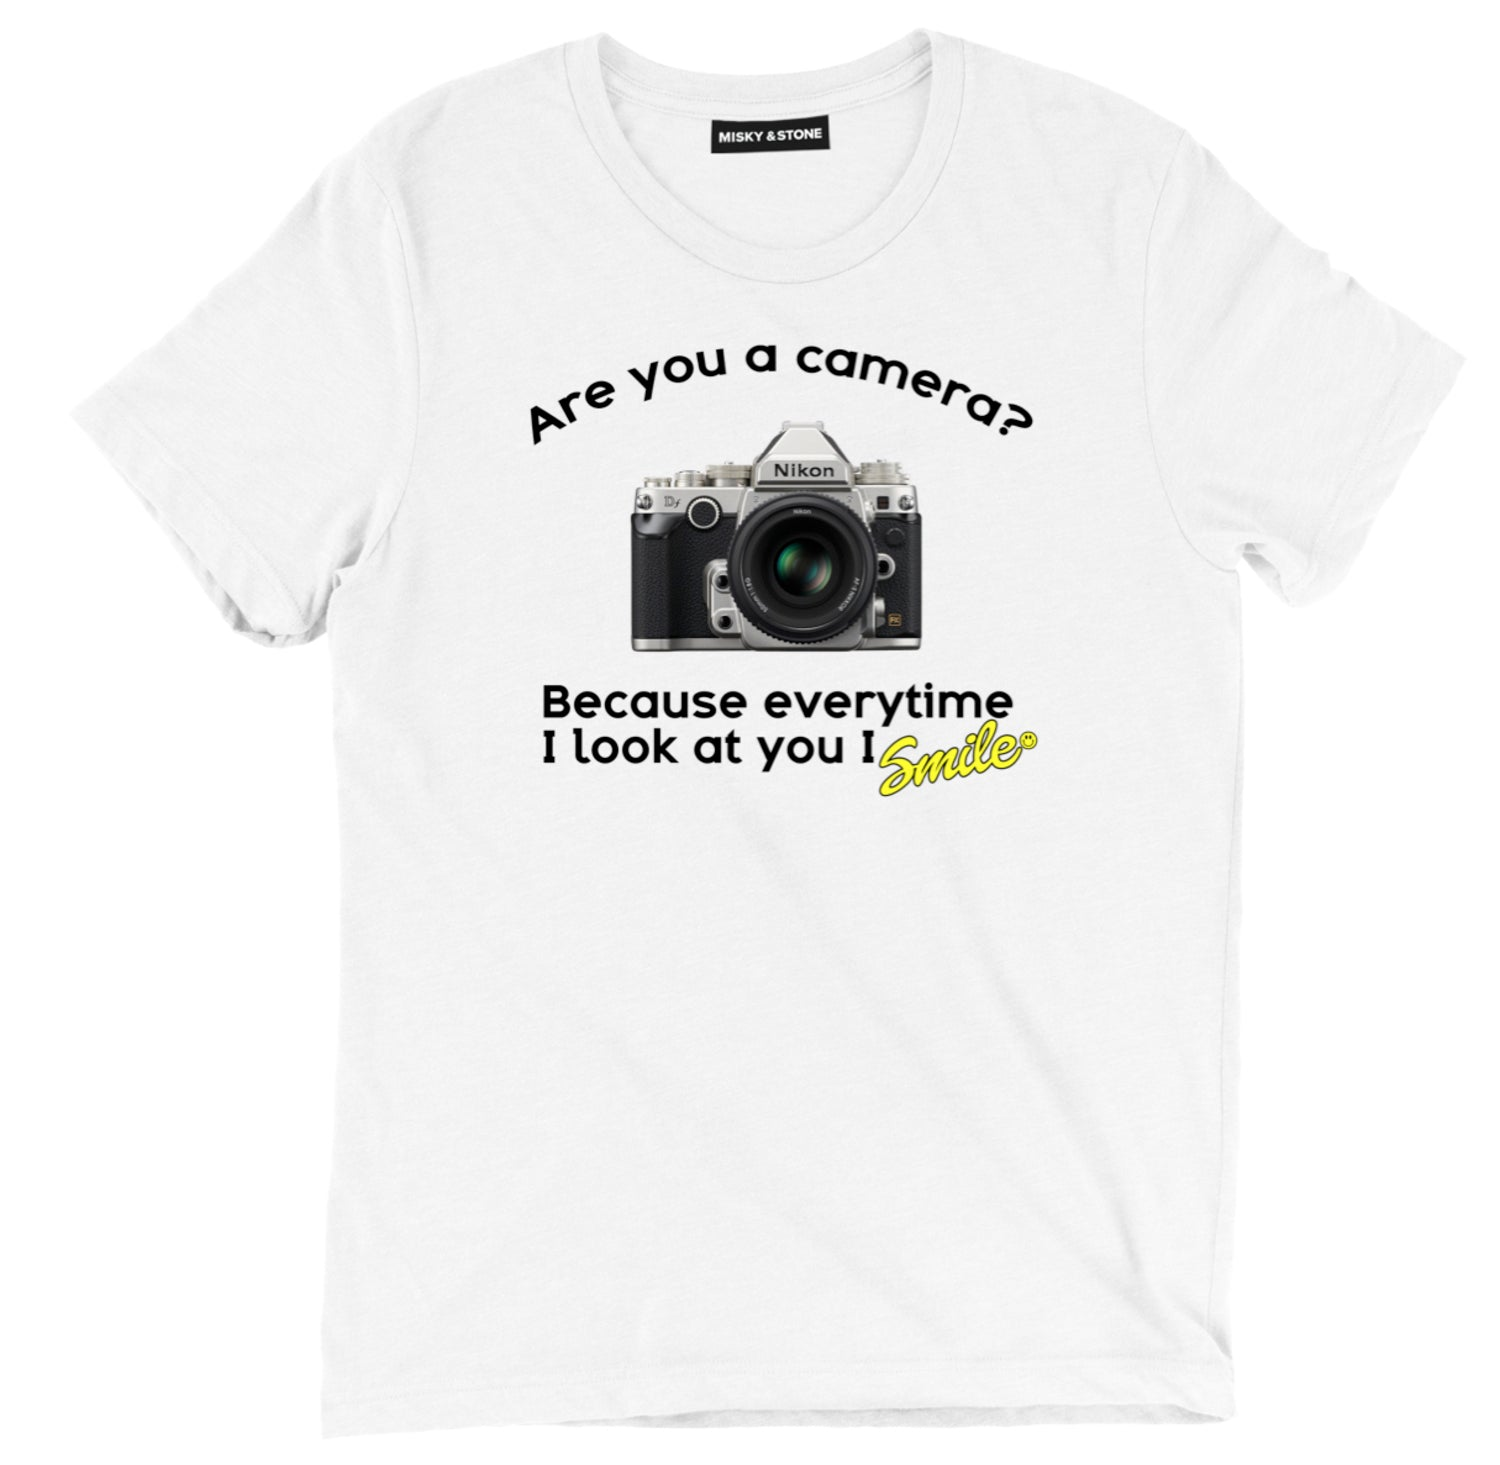 are you a camera sarcastic tee shirts, Every time I look at you I smile sarcastic merch, sarcastic Camera clothing, sarcastic Pick up line apparel, sarcastic t shirt sayings, sarcastic t shirts quotes, funny sarcastic t shirts